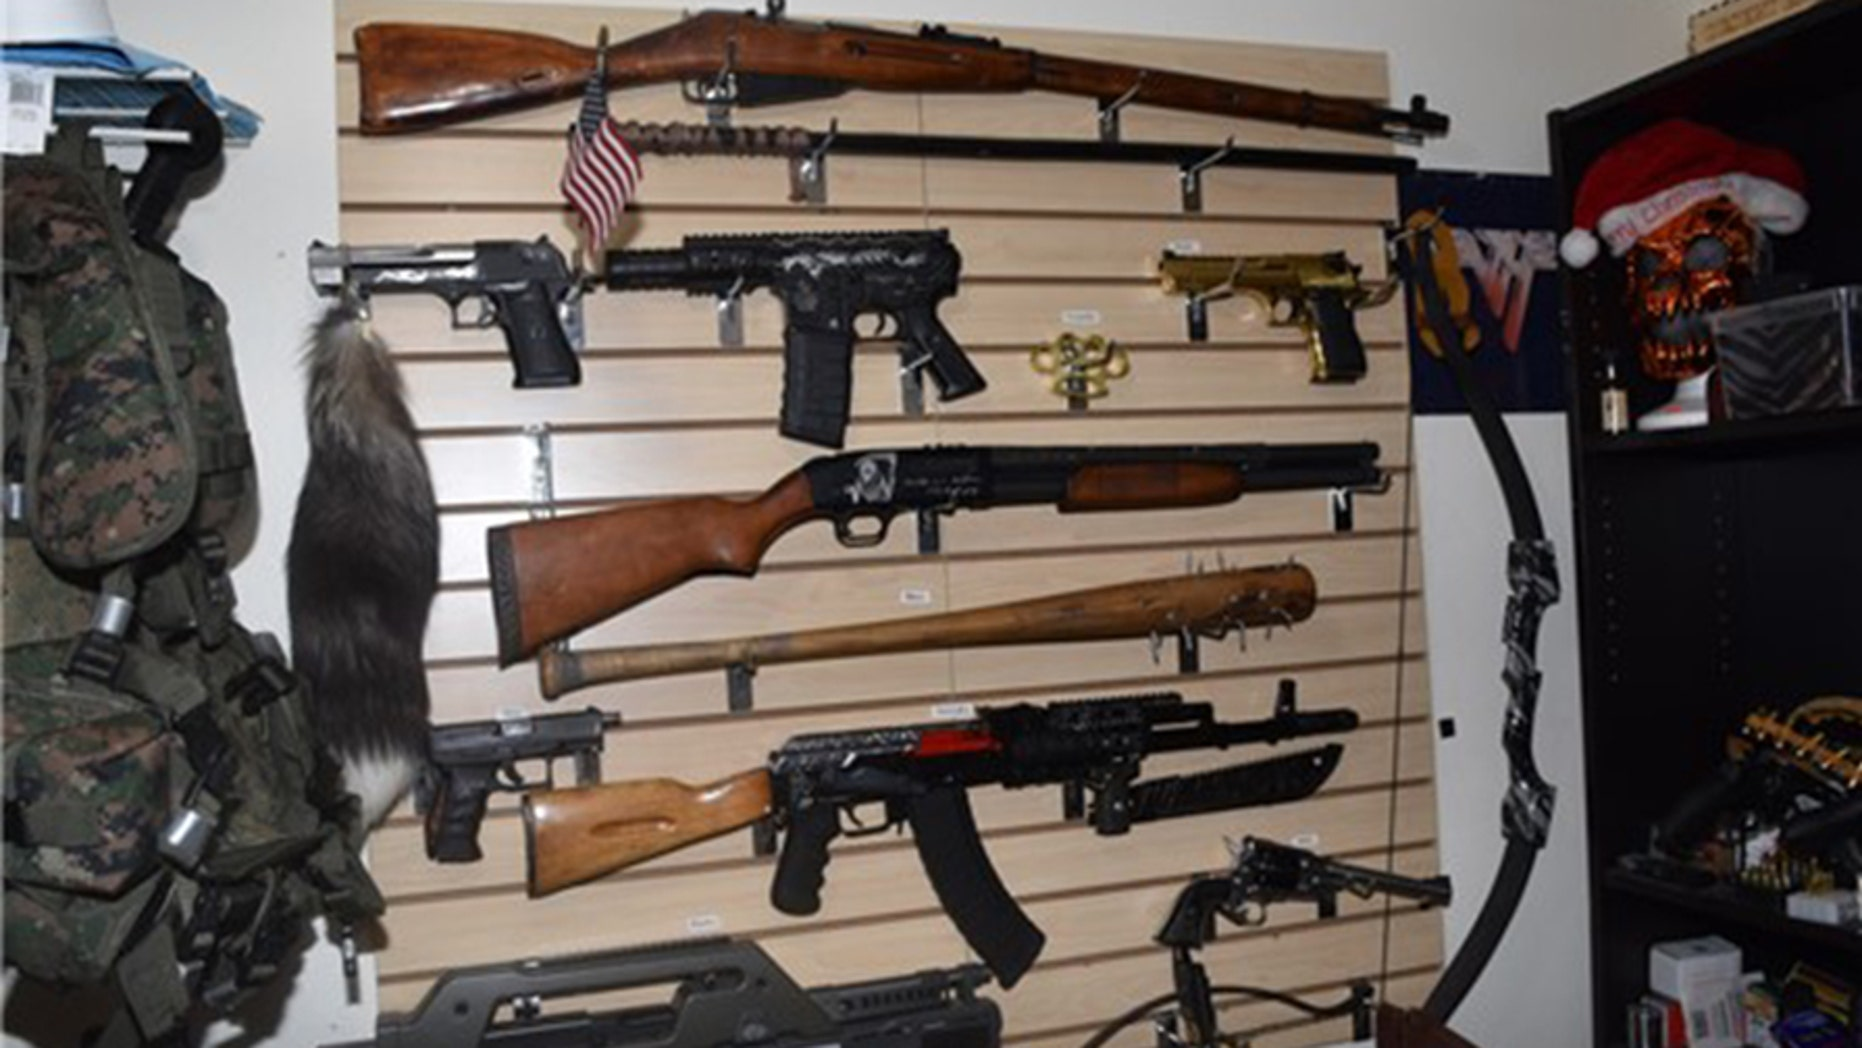 Deputies say these weapons were found in a closet belonging to Randall Drake, 24, in Dunedin, Florida.